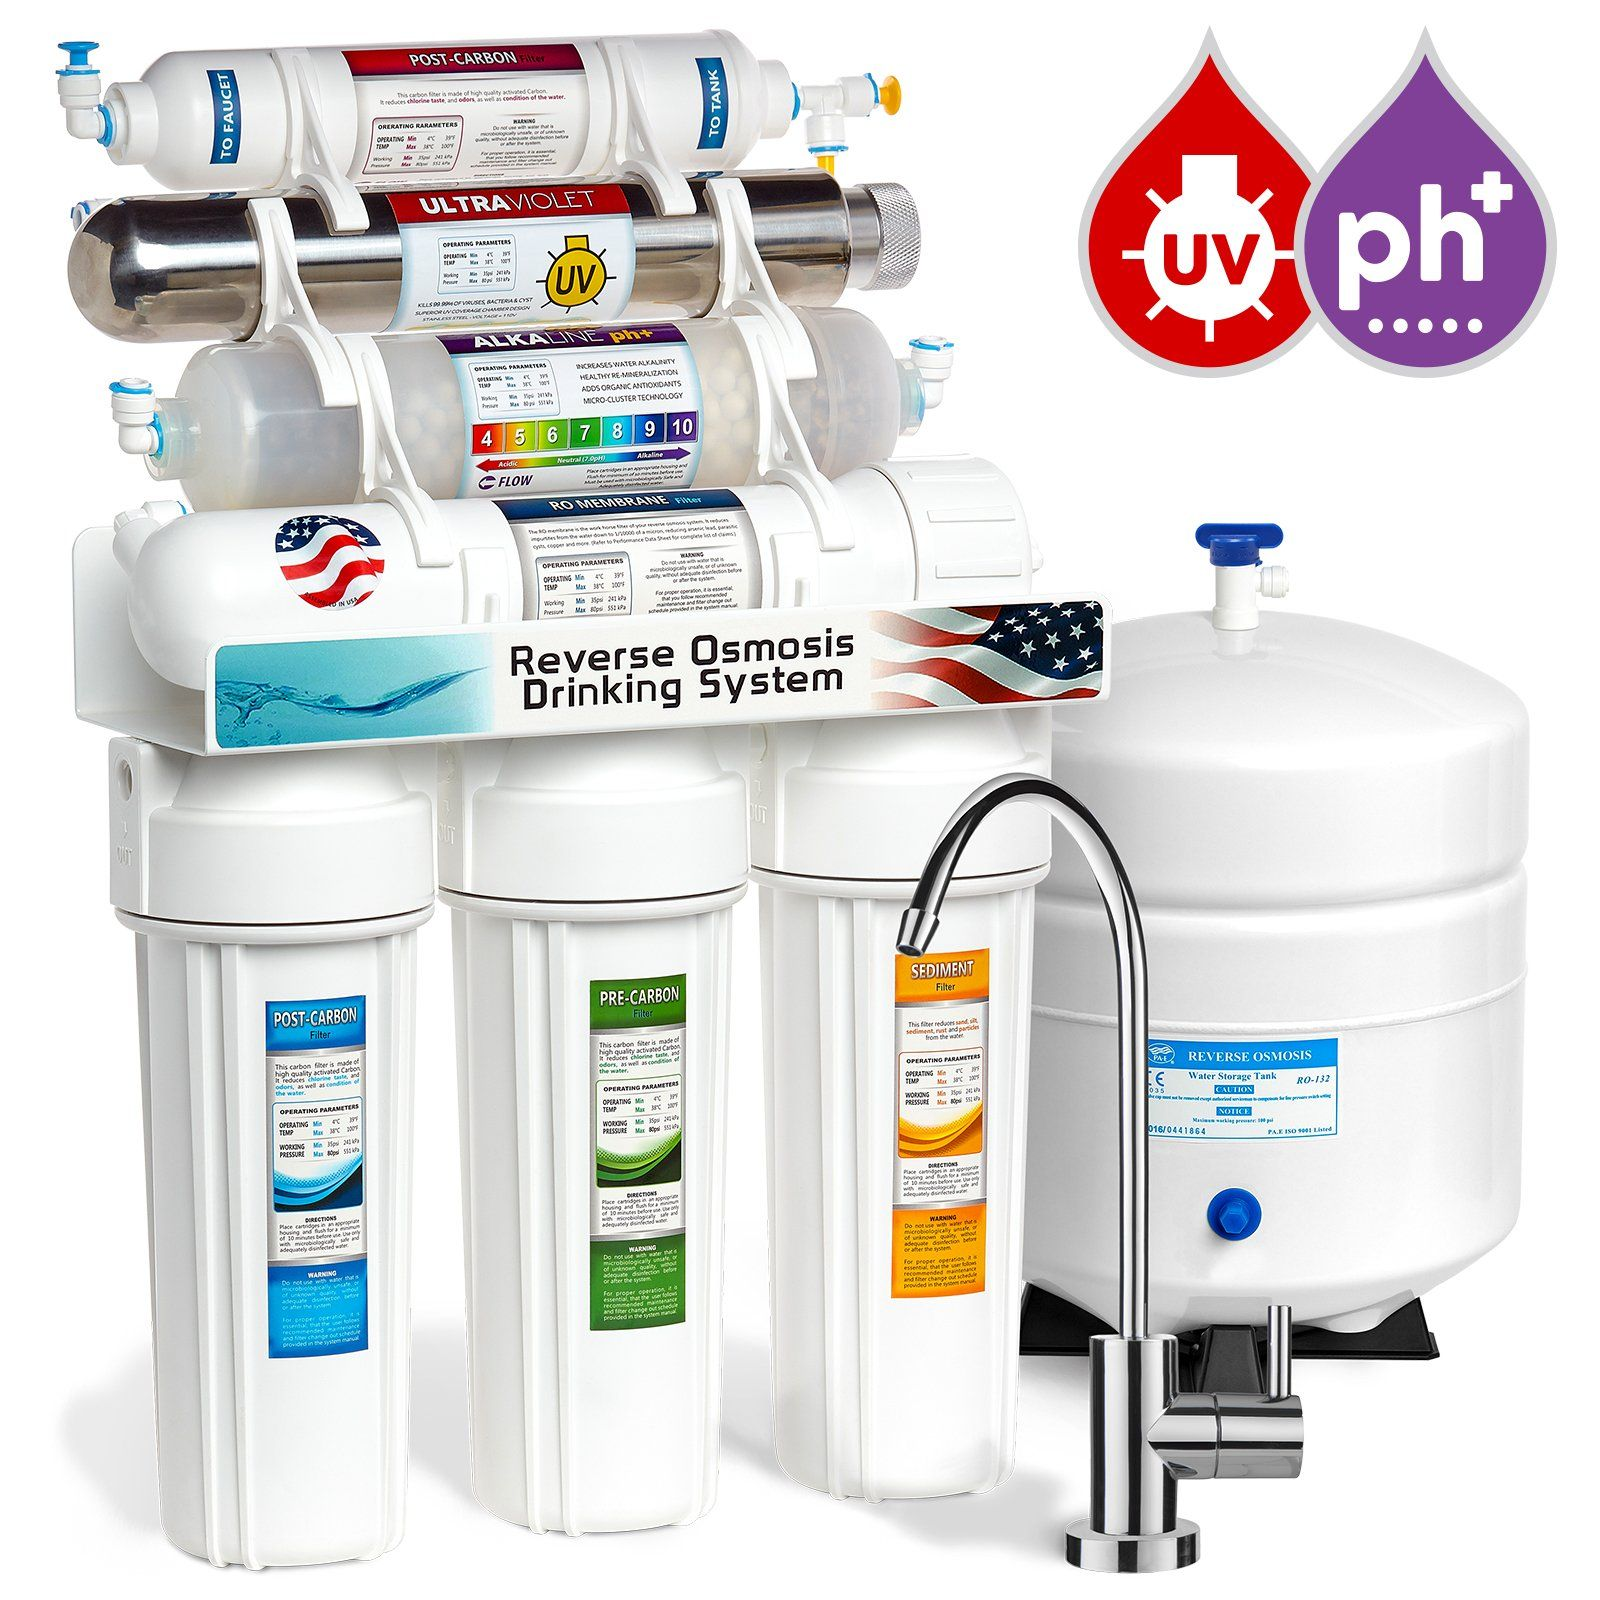 Express Water Alkaline Ultraviolet Reverse Osmosis Water Filtration System A 11 Stage Ro Uv M Osmosis Water Filter Reverse Osmosis Water Water Filters System